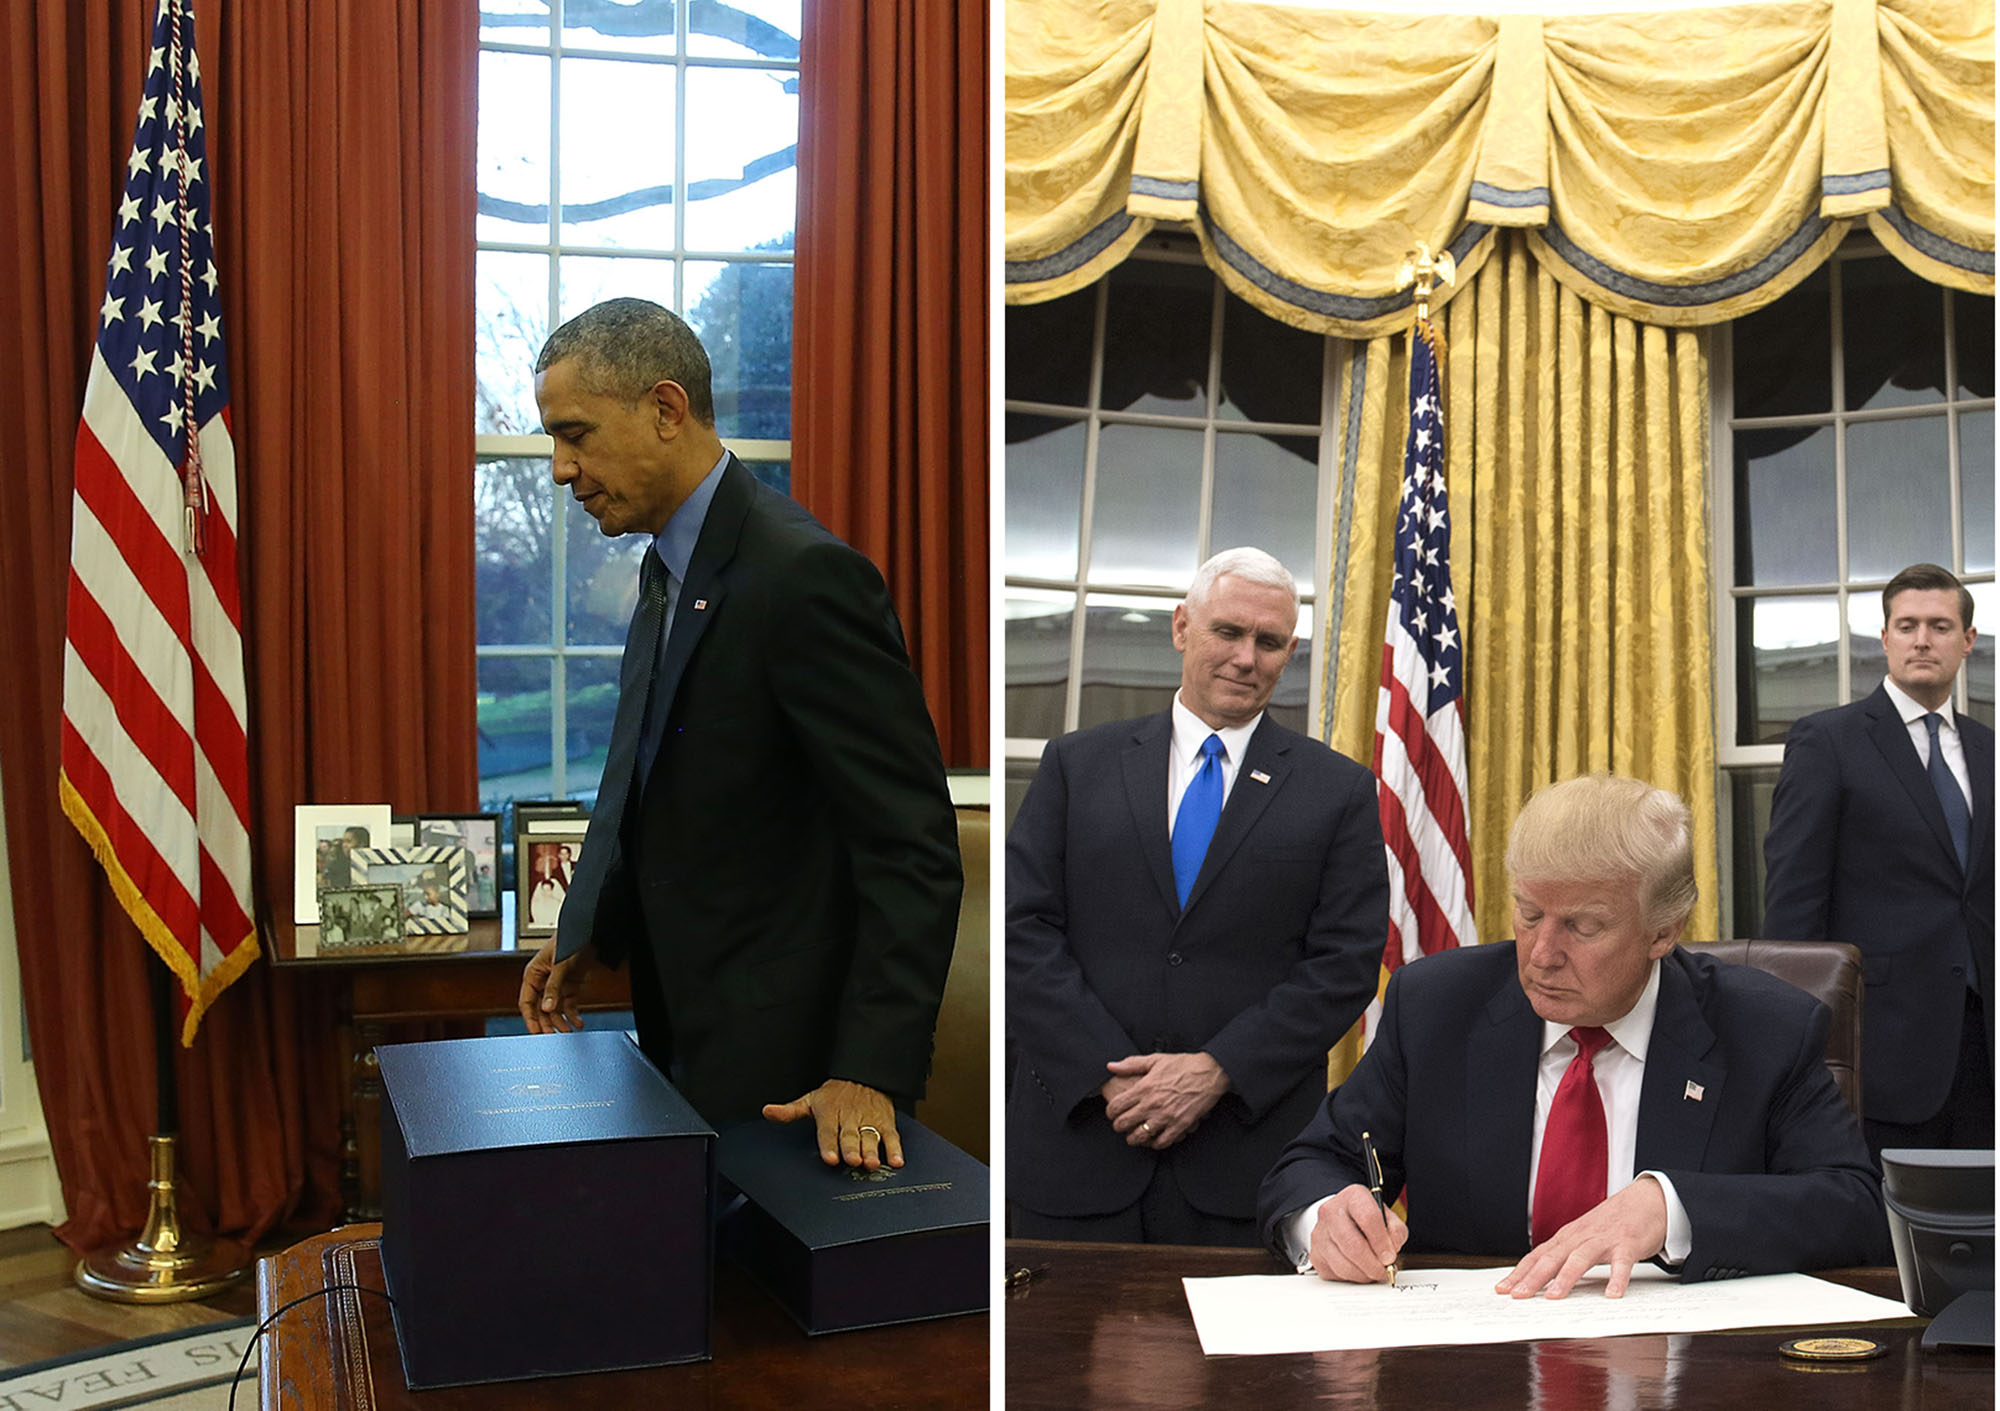 obamas oval office. PHOTO:President Obama In The Oval Office 2015, Left, President Trump January 2017. - ABC News Obamas O